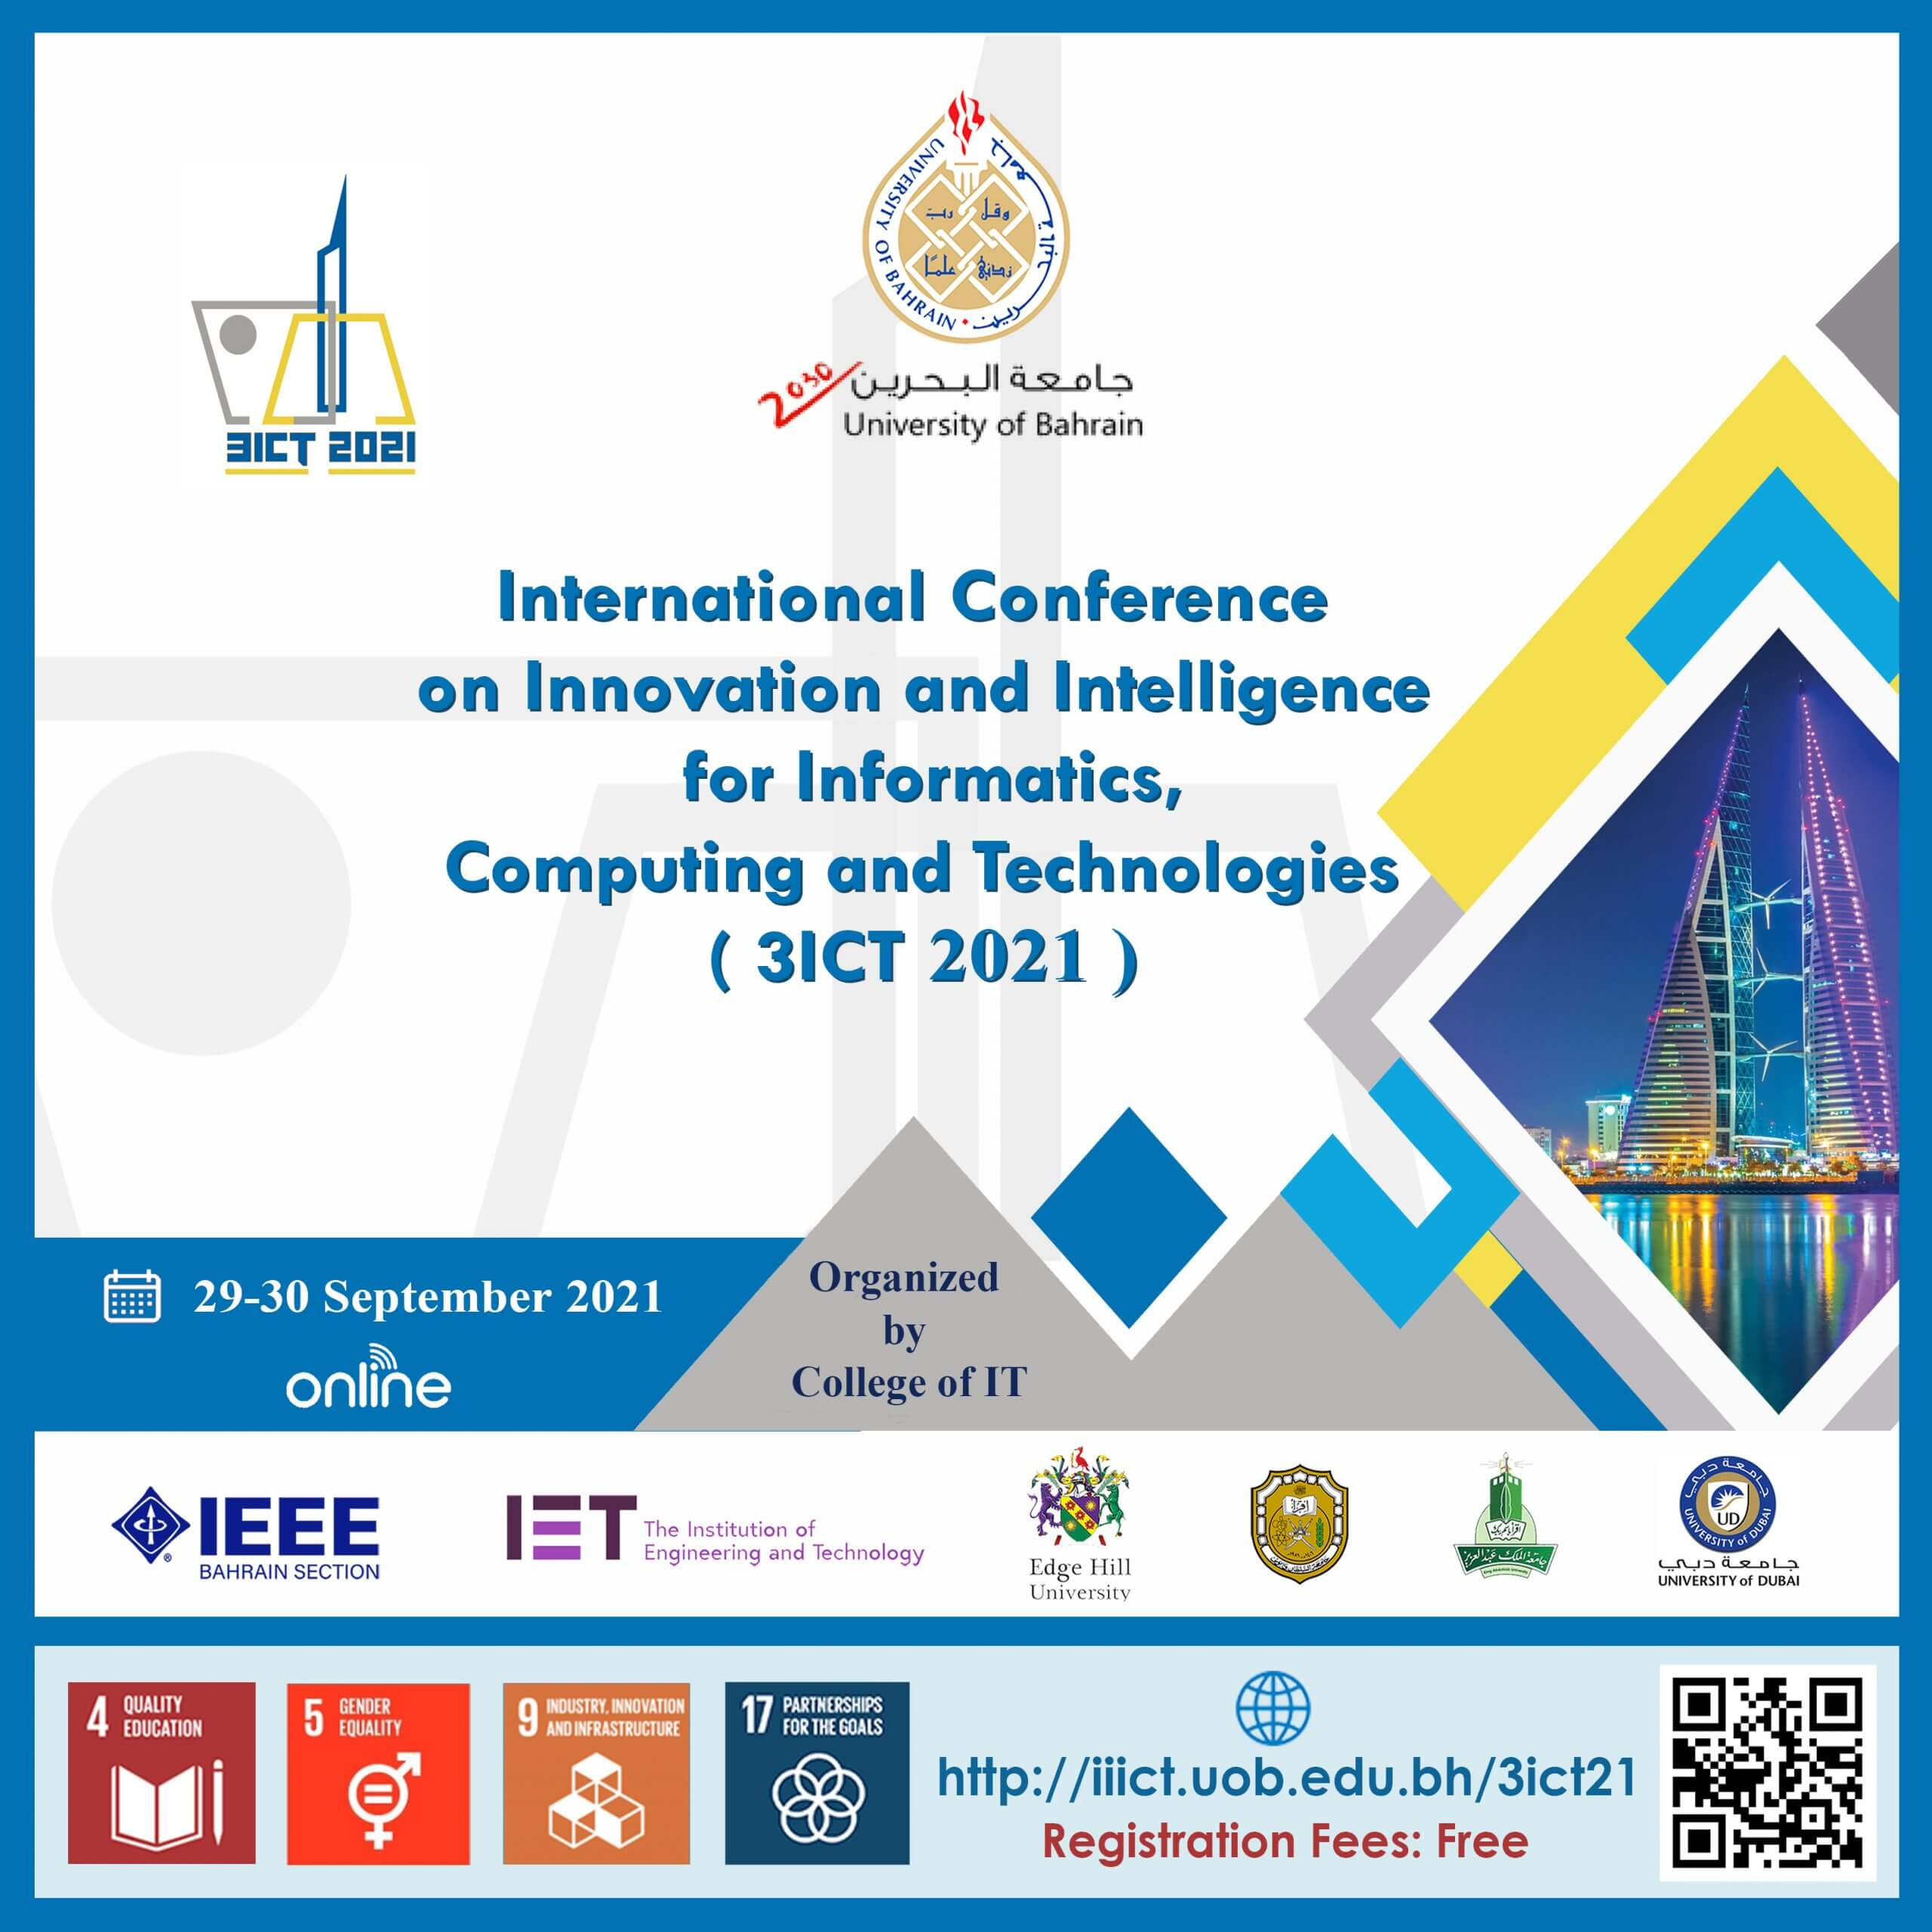 The International Conference on Innovation and Intelligence for Informatics, Computing, and Technologies (3ICT 2021)